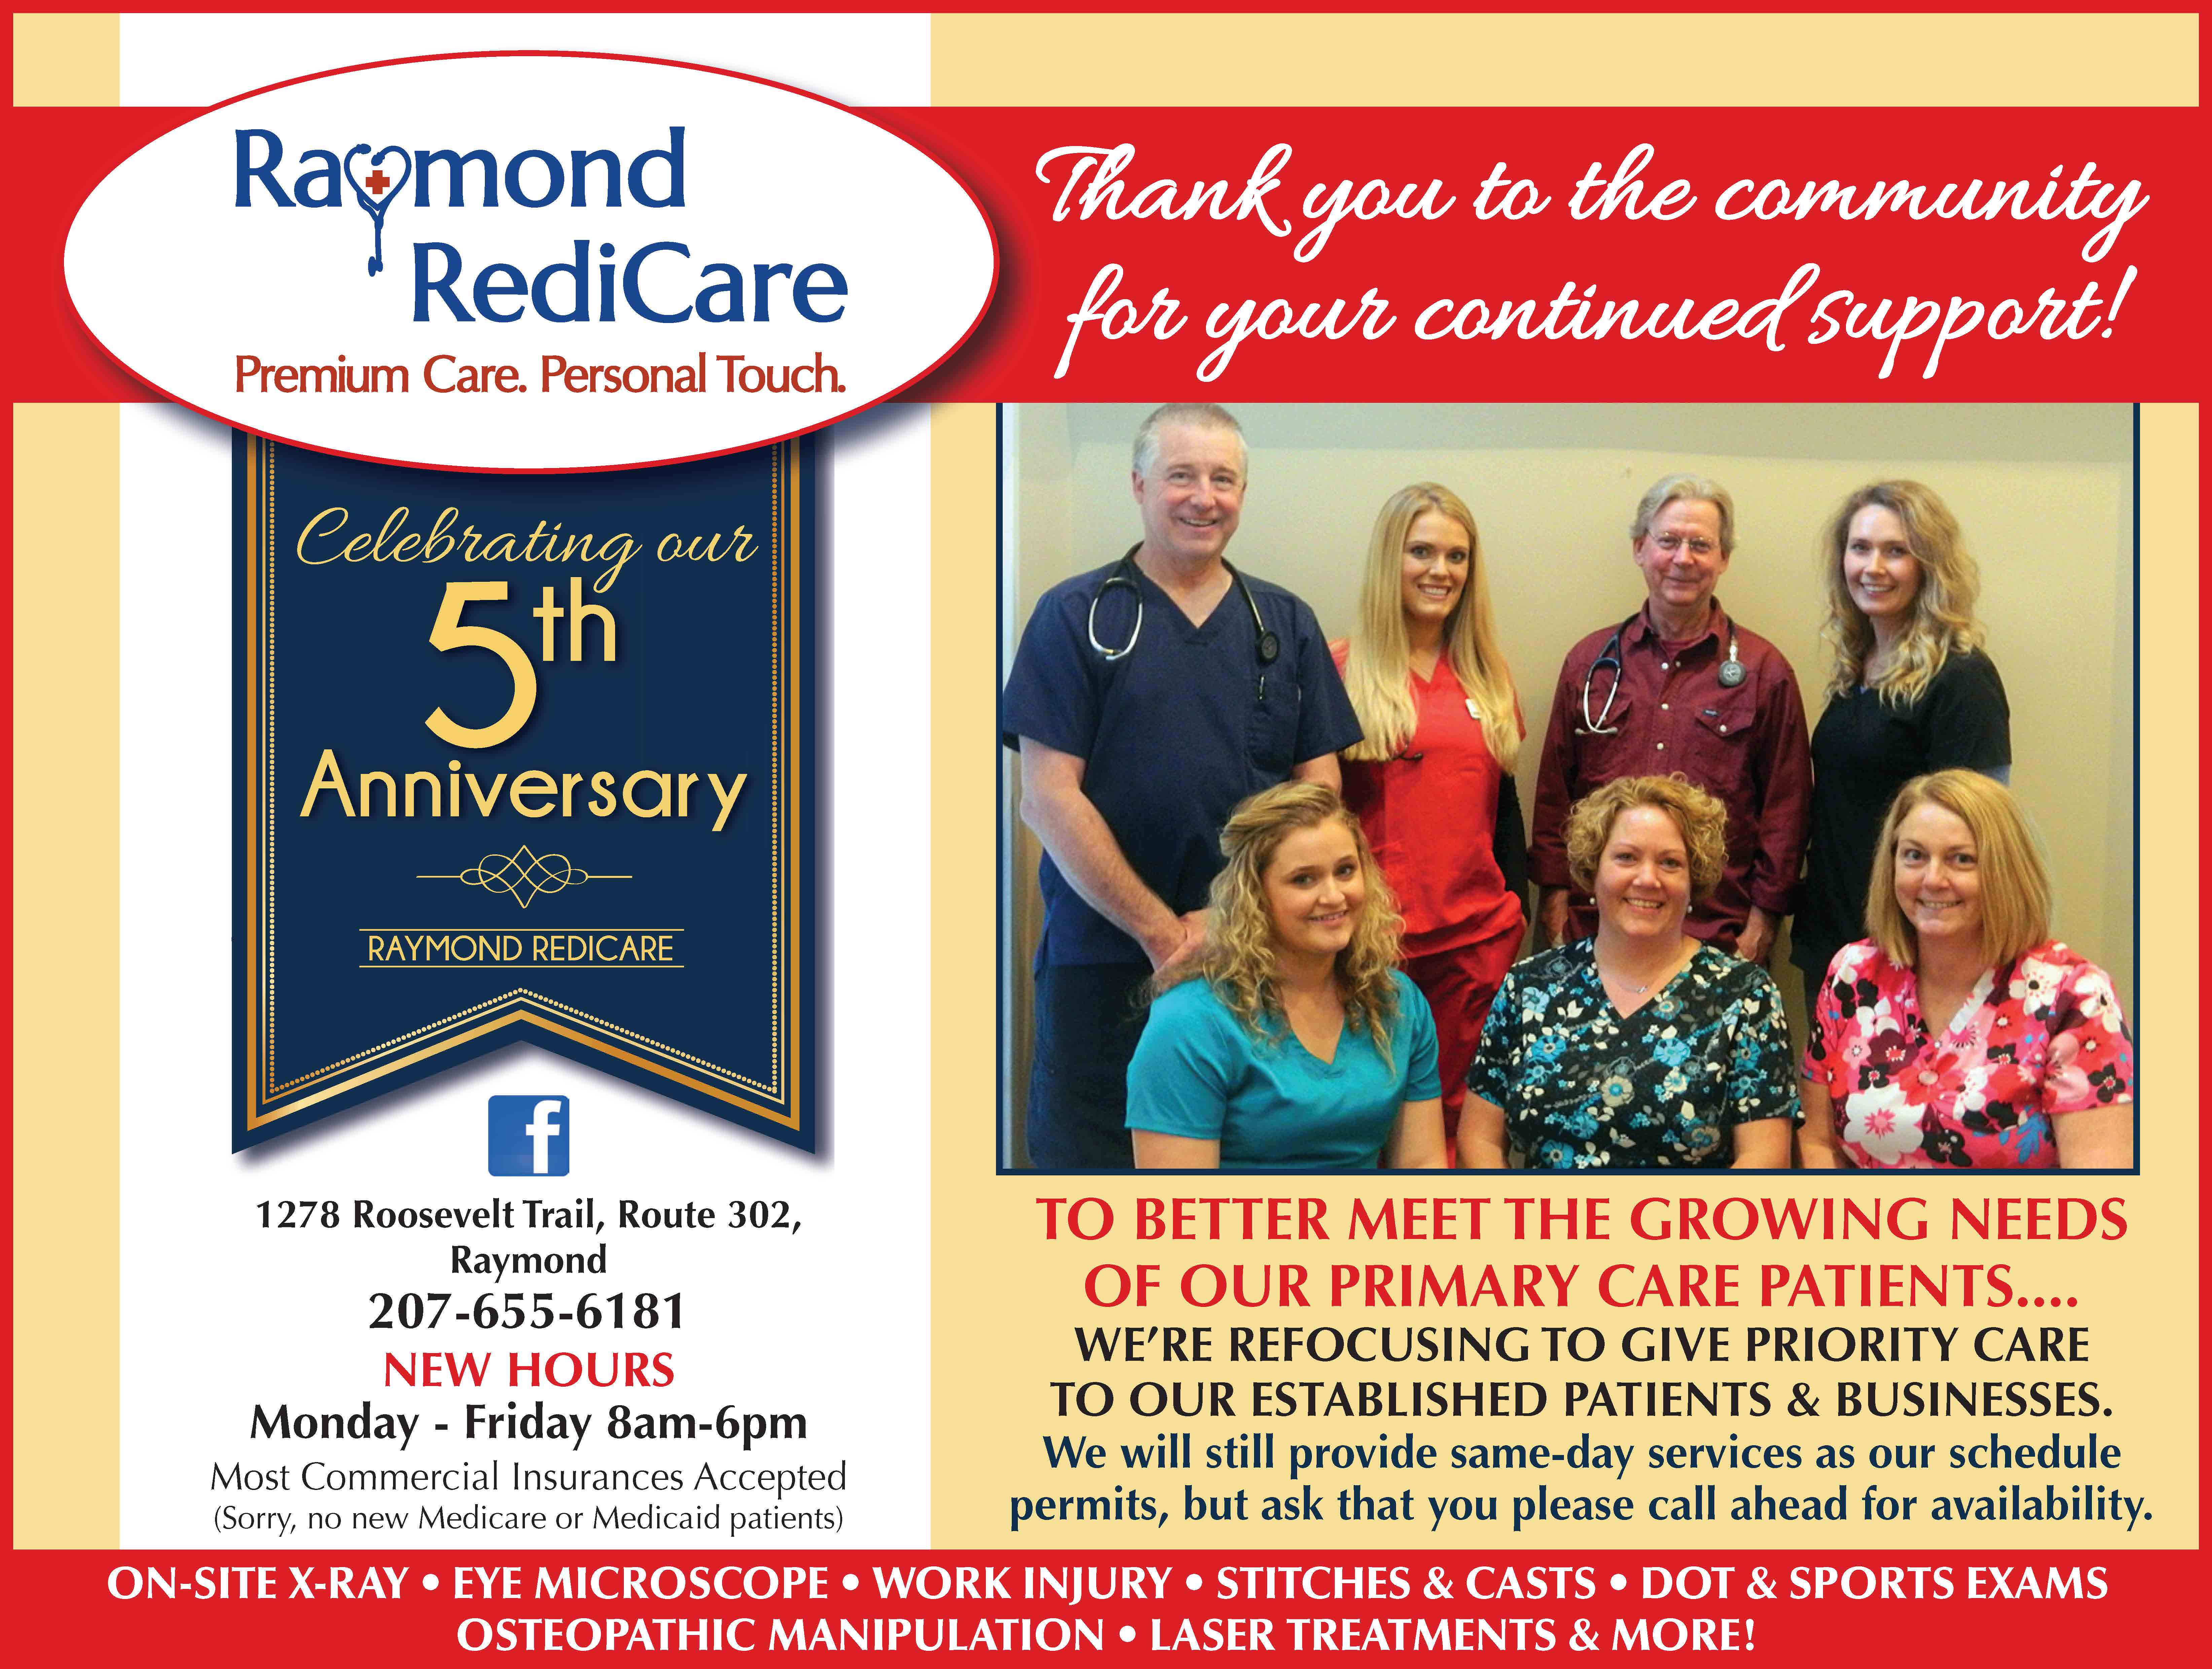 https://www.facebook.com/RaymondRediCare/